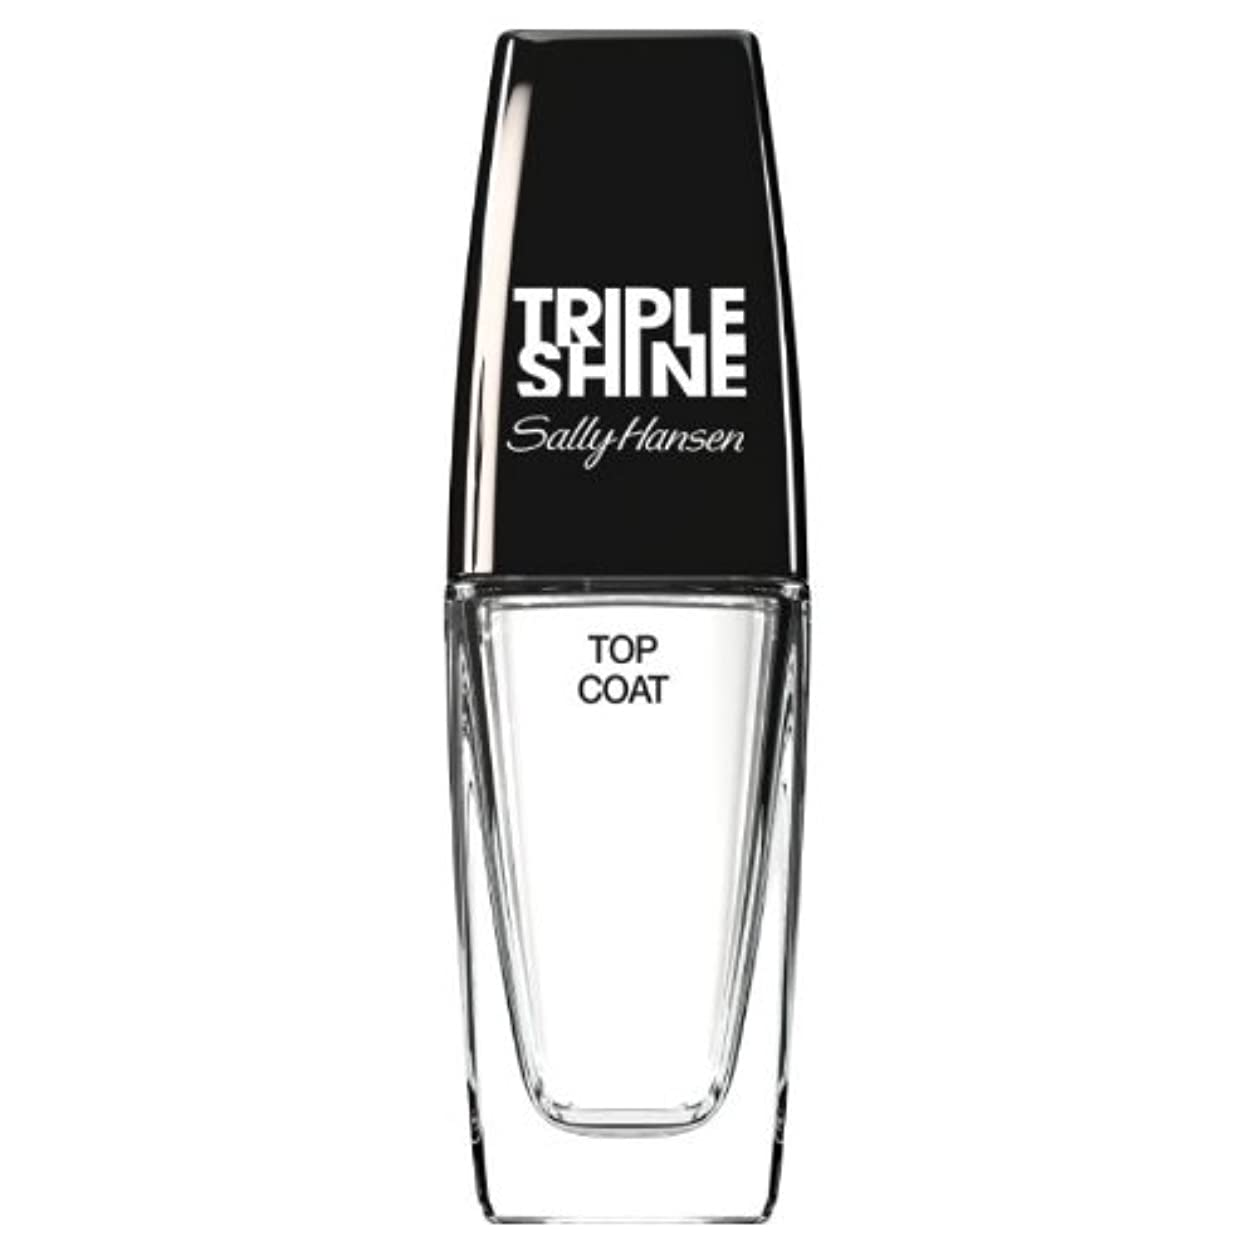 重要な友だち不倫(3 Pack) SALLY HANSEN Triple Shine Top Coat - Triple Shine Top Coat (並行輸入品)